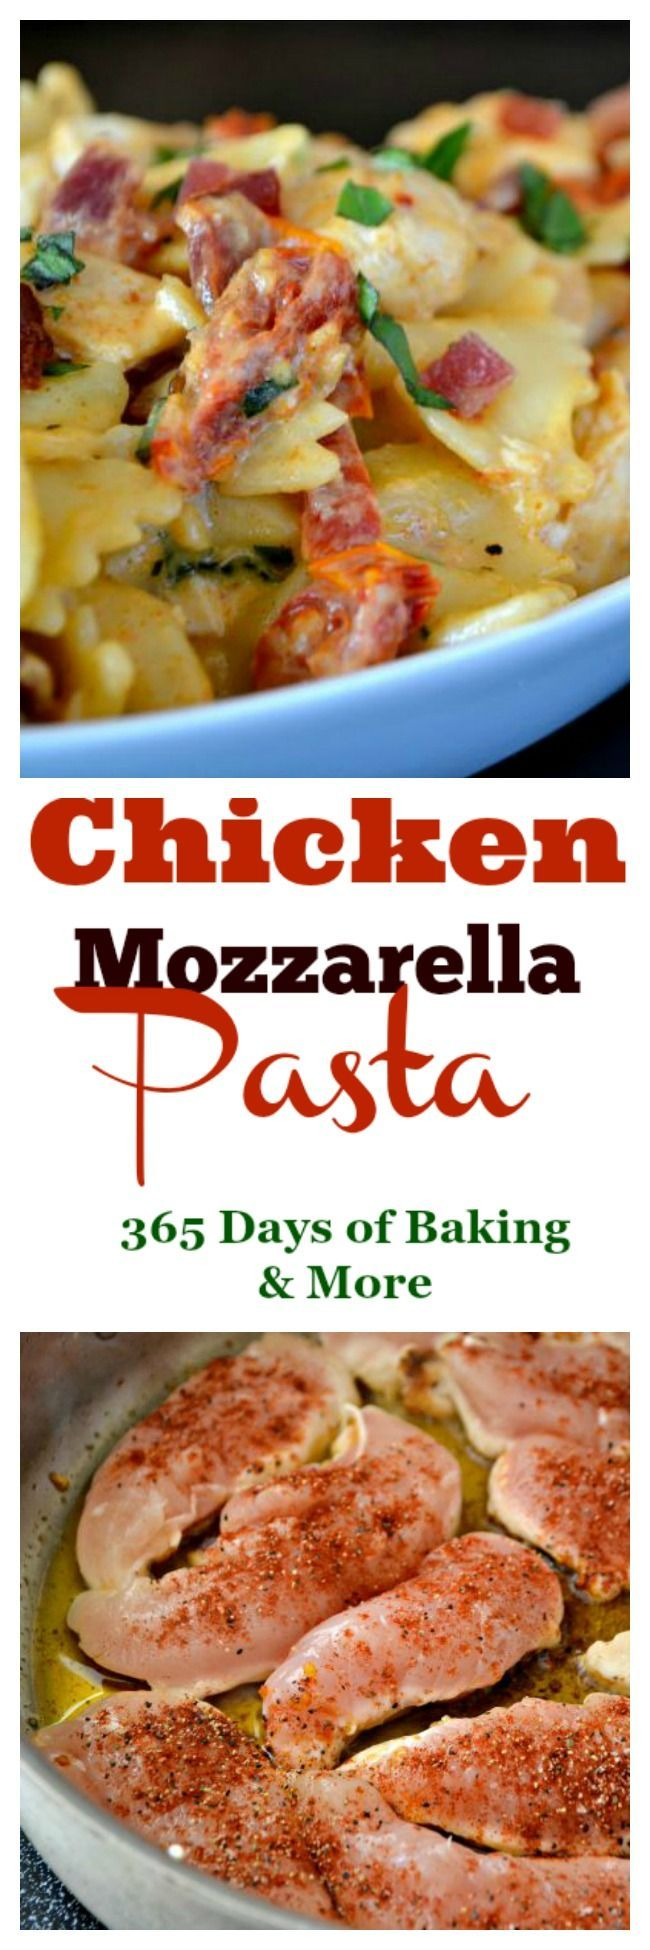 All Things Savory: Chicken Mozzarella Pasta - 365 Days of Baking and ...